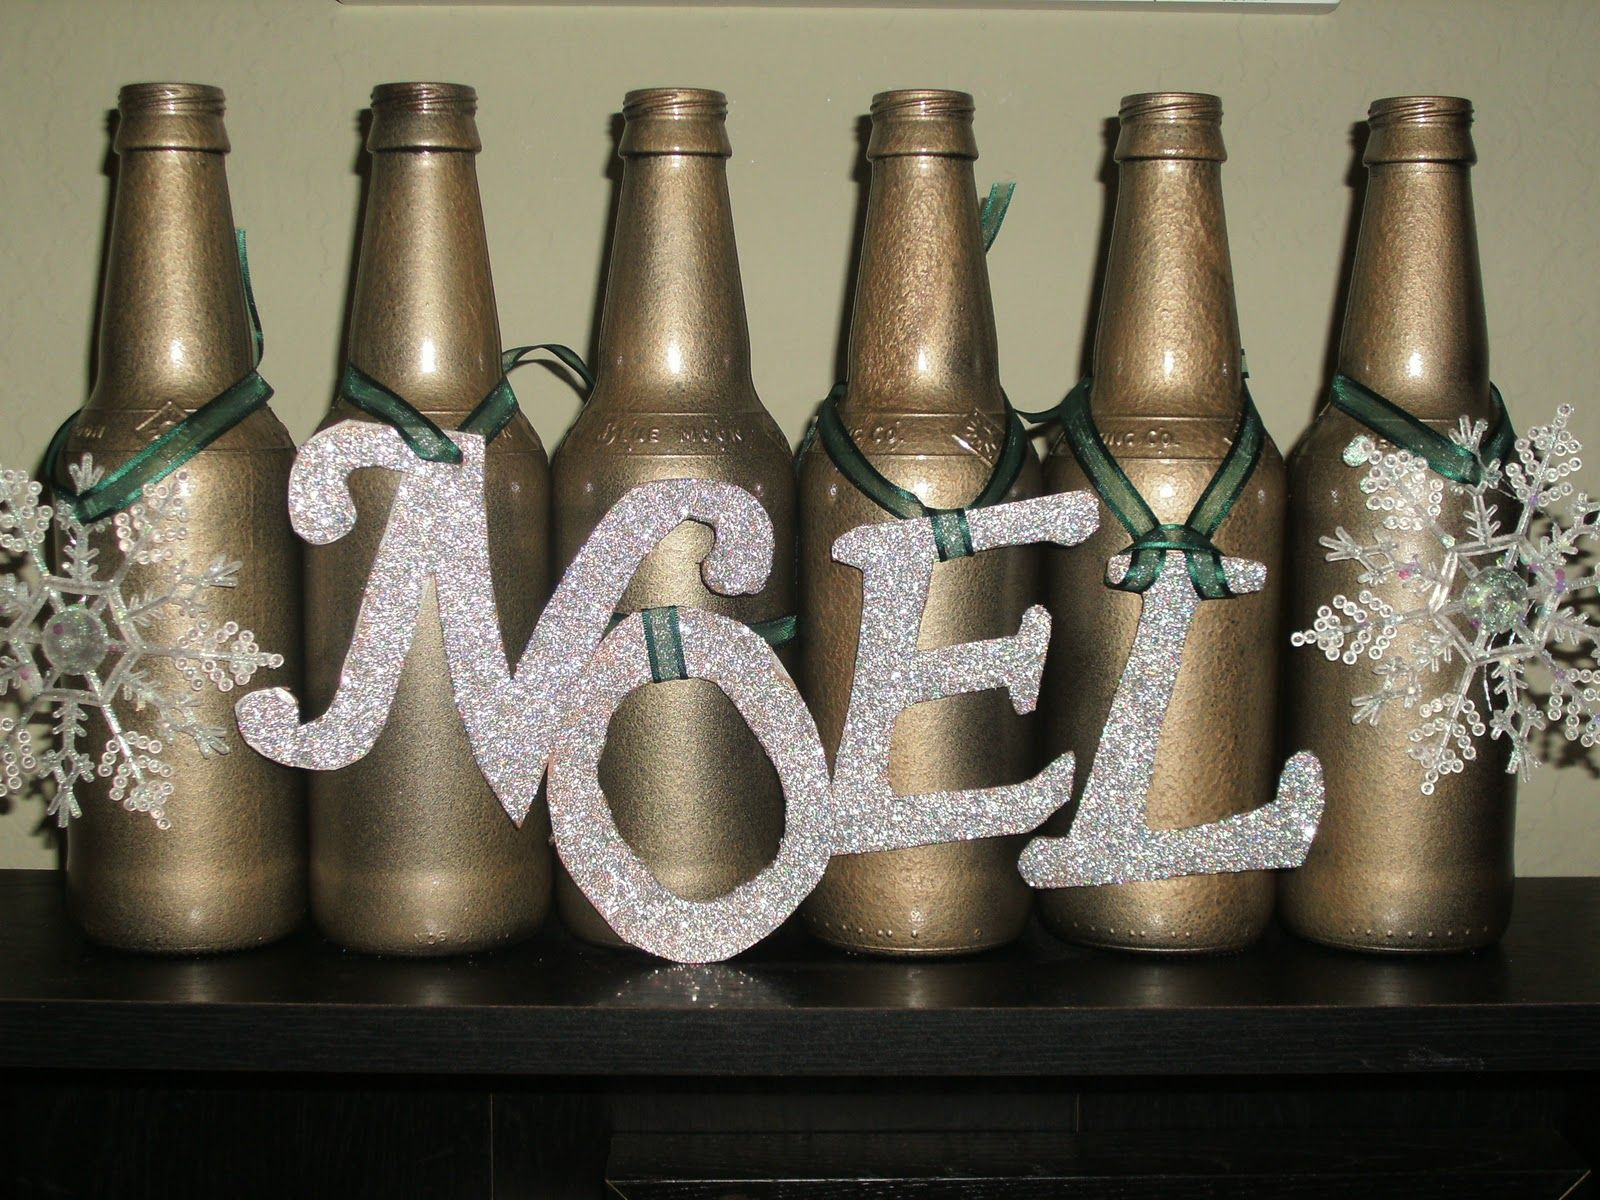 Decorate Beer Bottles For Christmas Where's My Dream Life Upcycled Beer Bottle Christmas Decor